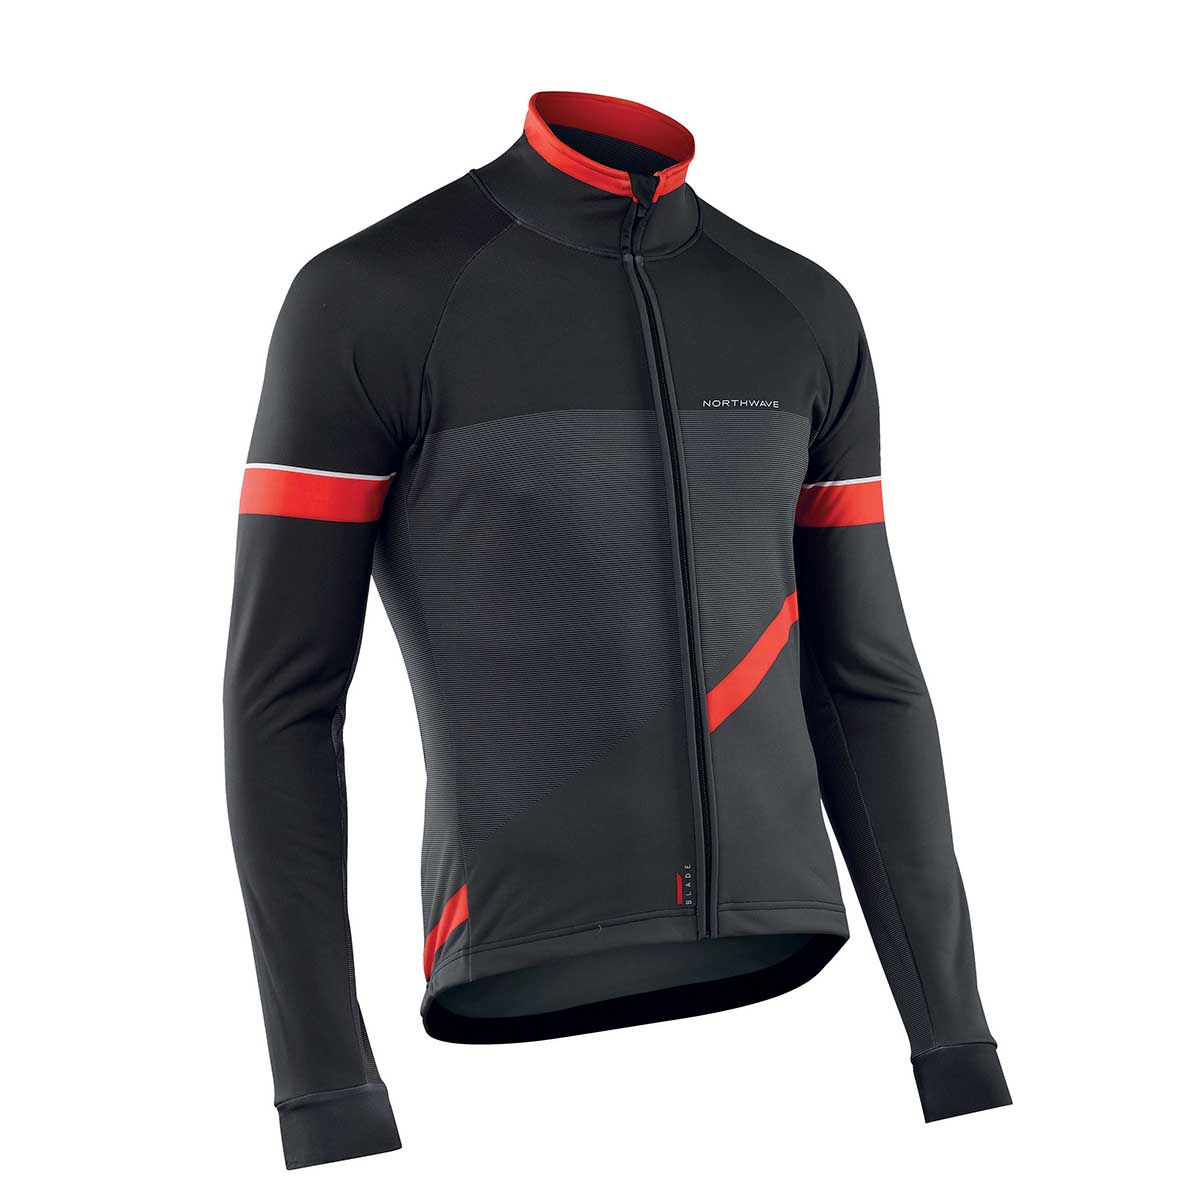 Northwave - Blade 2 Jacket - M Camo Black/Red Coupe-vents vélo